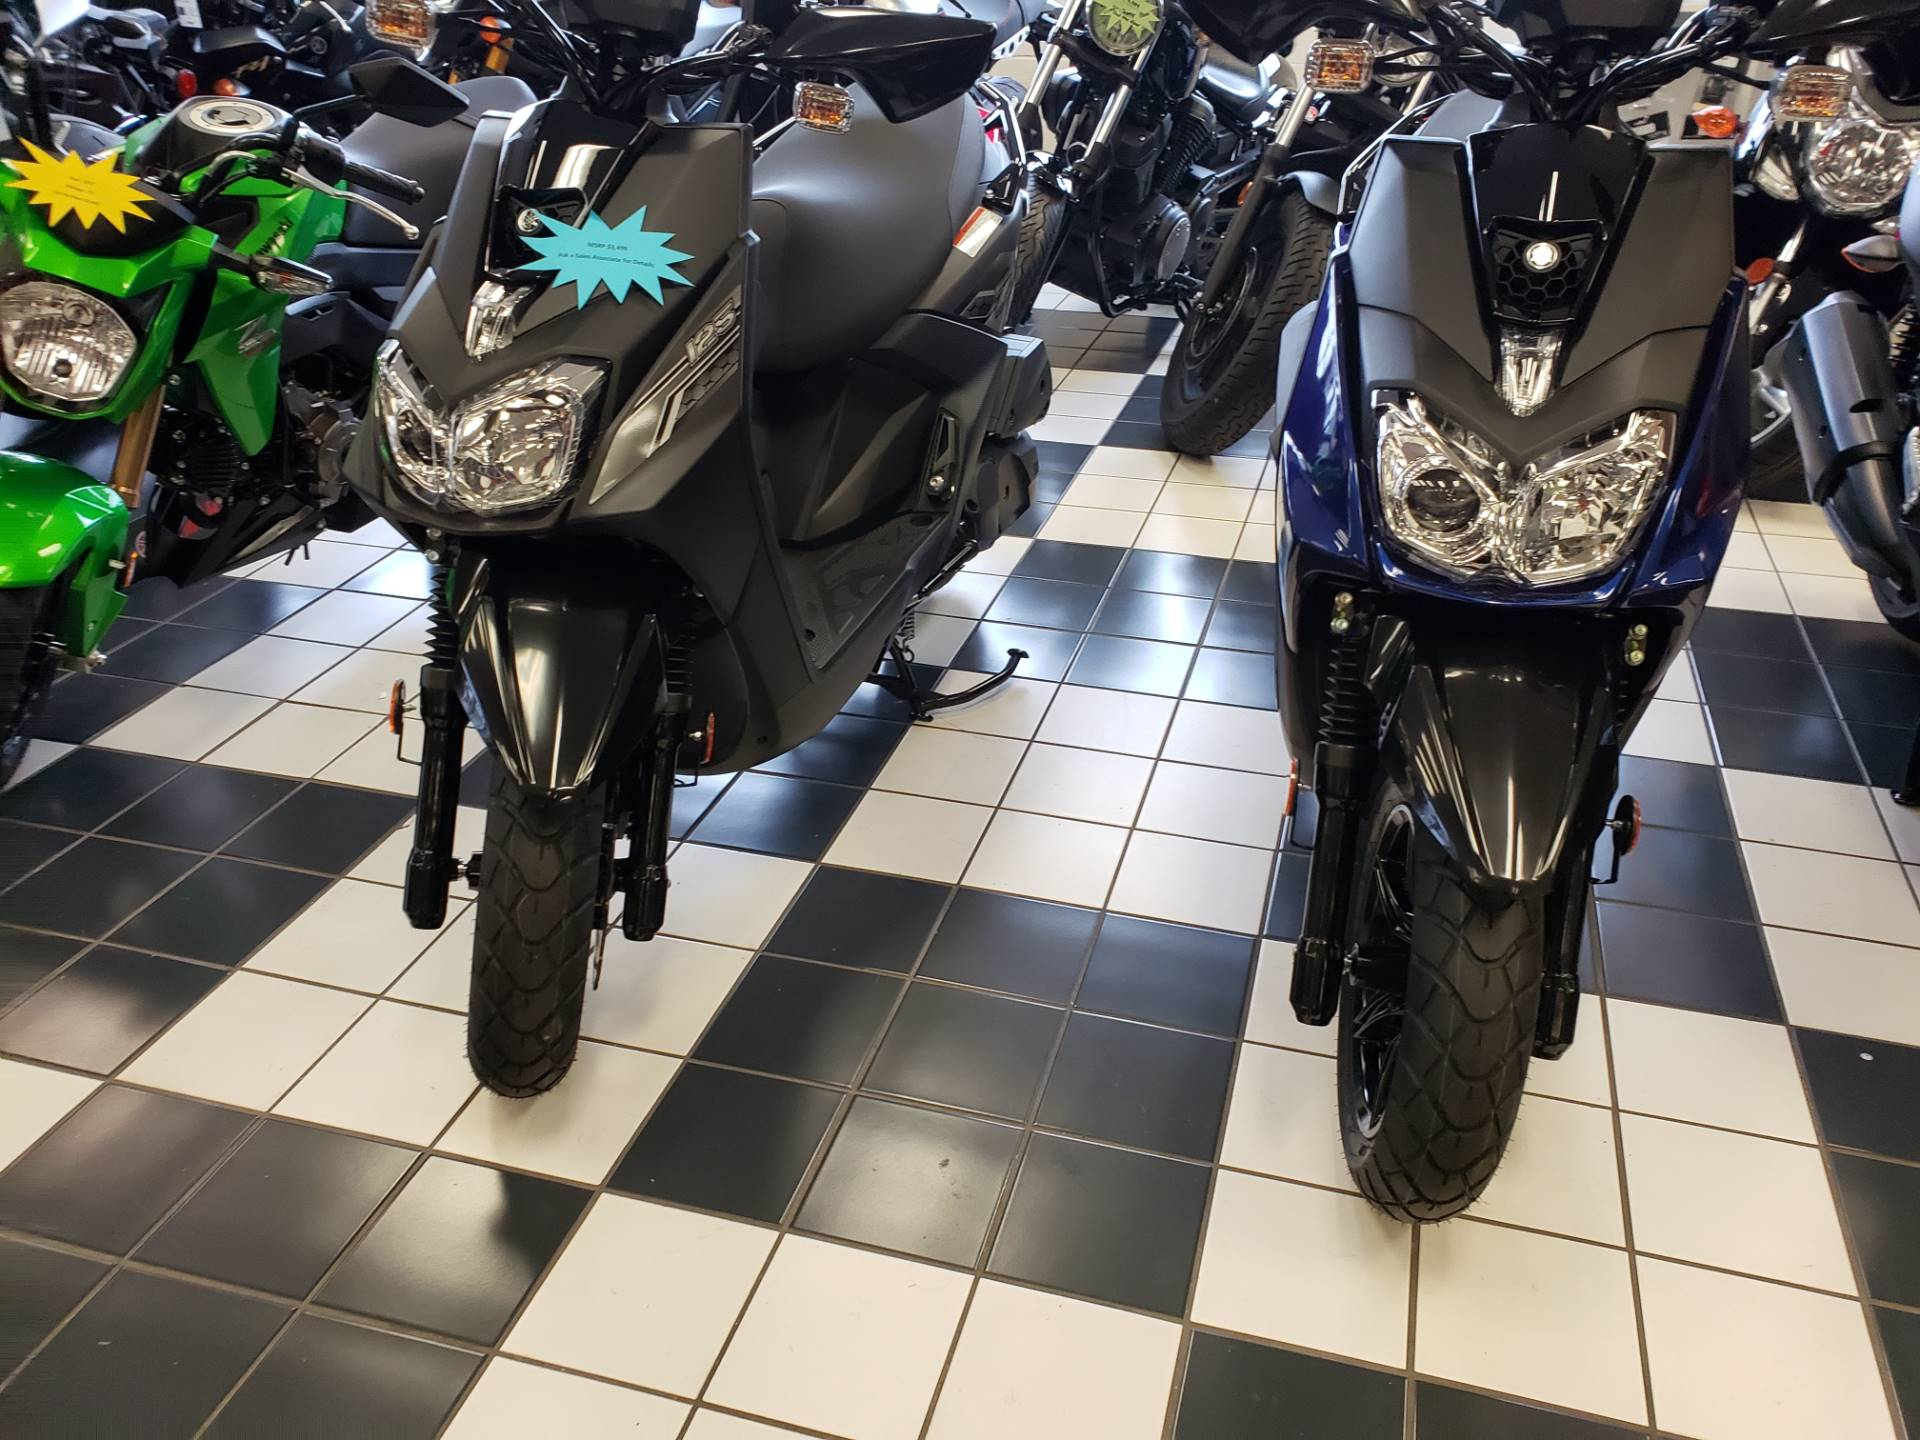 2020 Yamaha Zuma 125 in Tulsa, Oklahoma - Photo 2